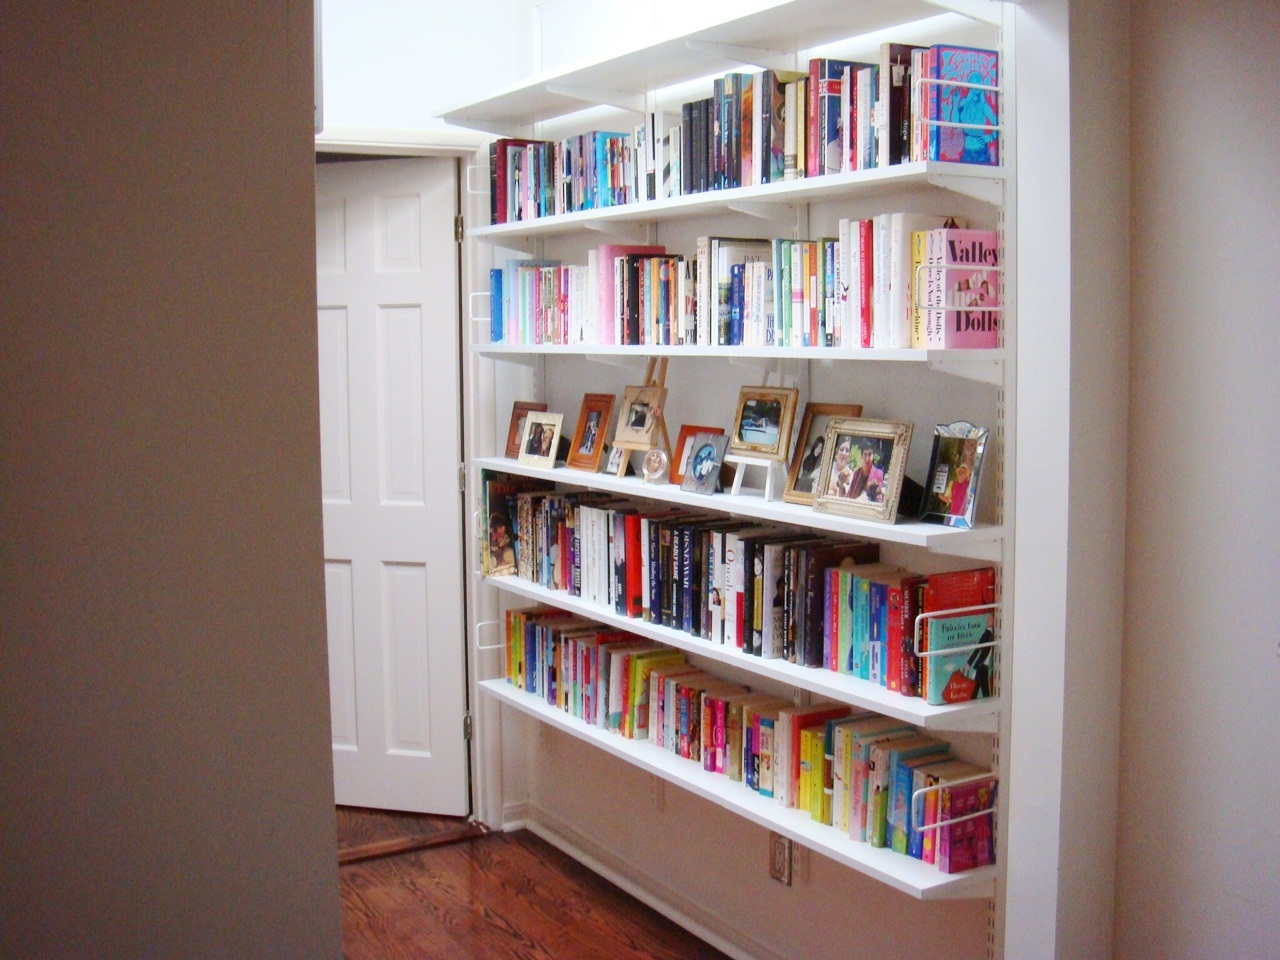 Sleek Light Bright And White Hallway Library Full Of Colorful Books Framed Photos